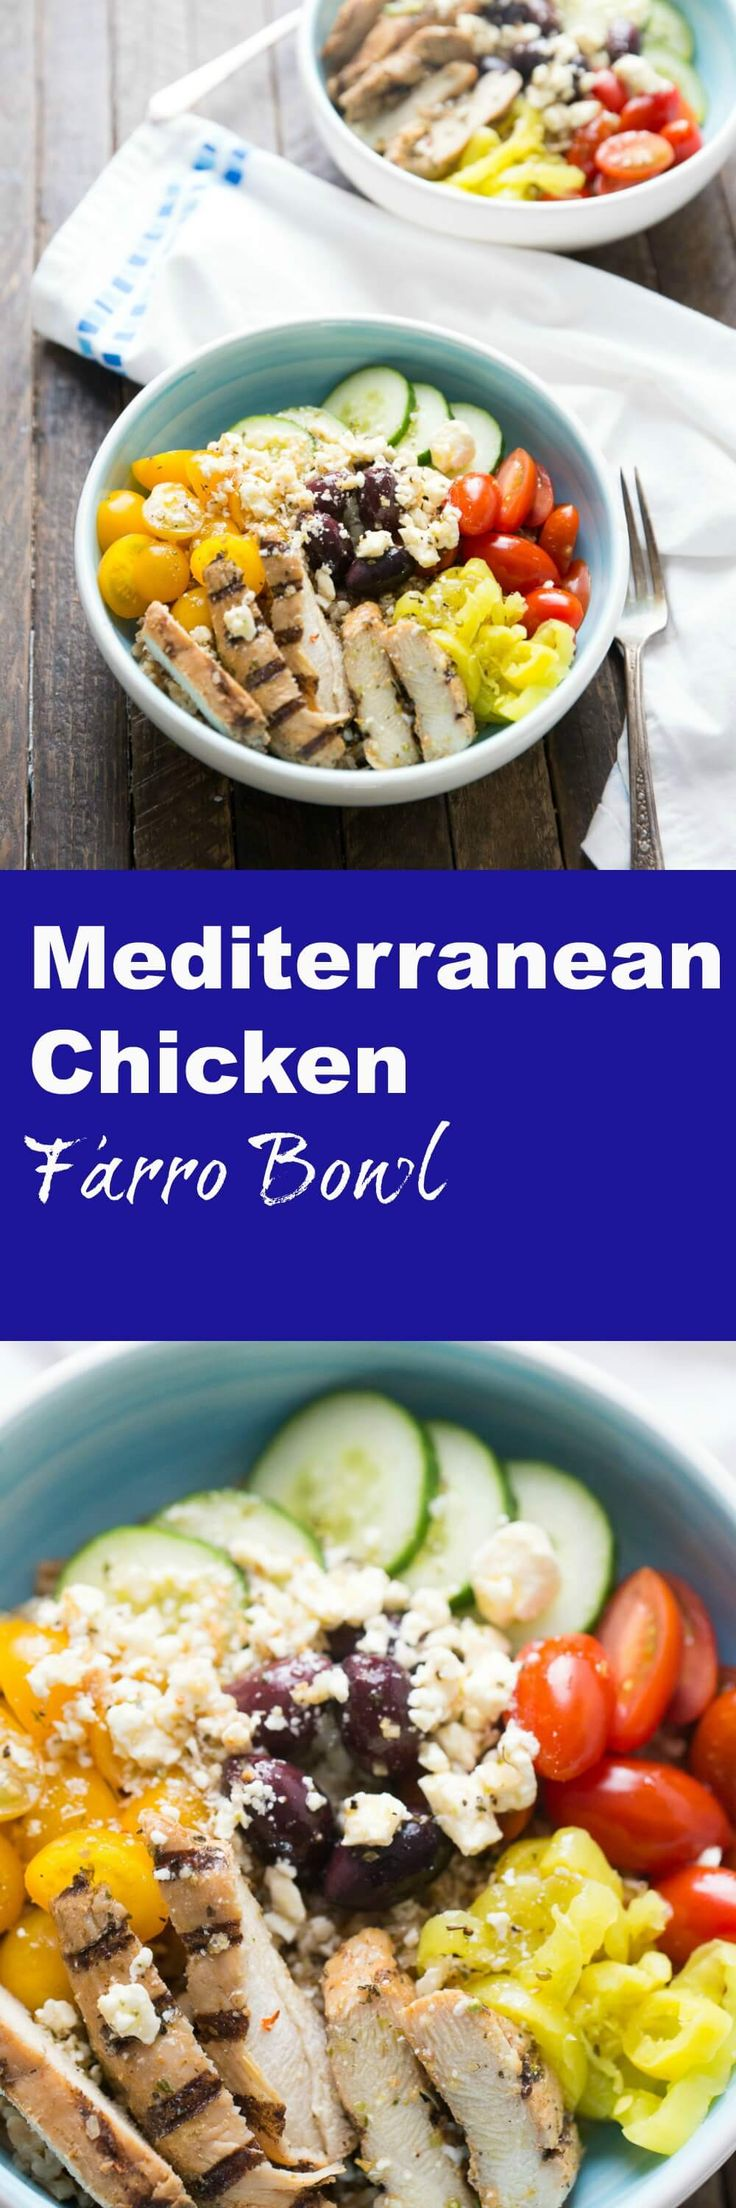 This Mediterranean chicken bowl will be one of those meals you turn to over and over again when you want something easy and healthy! This bowl is filled with so many flavors, it is absolutely delicious! lemonsforlulu.com via @Lemonsforlulu